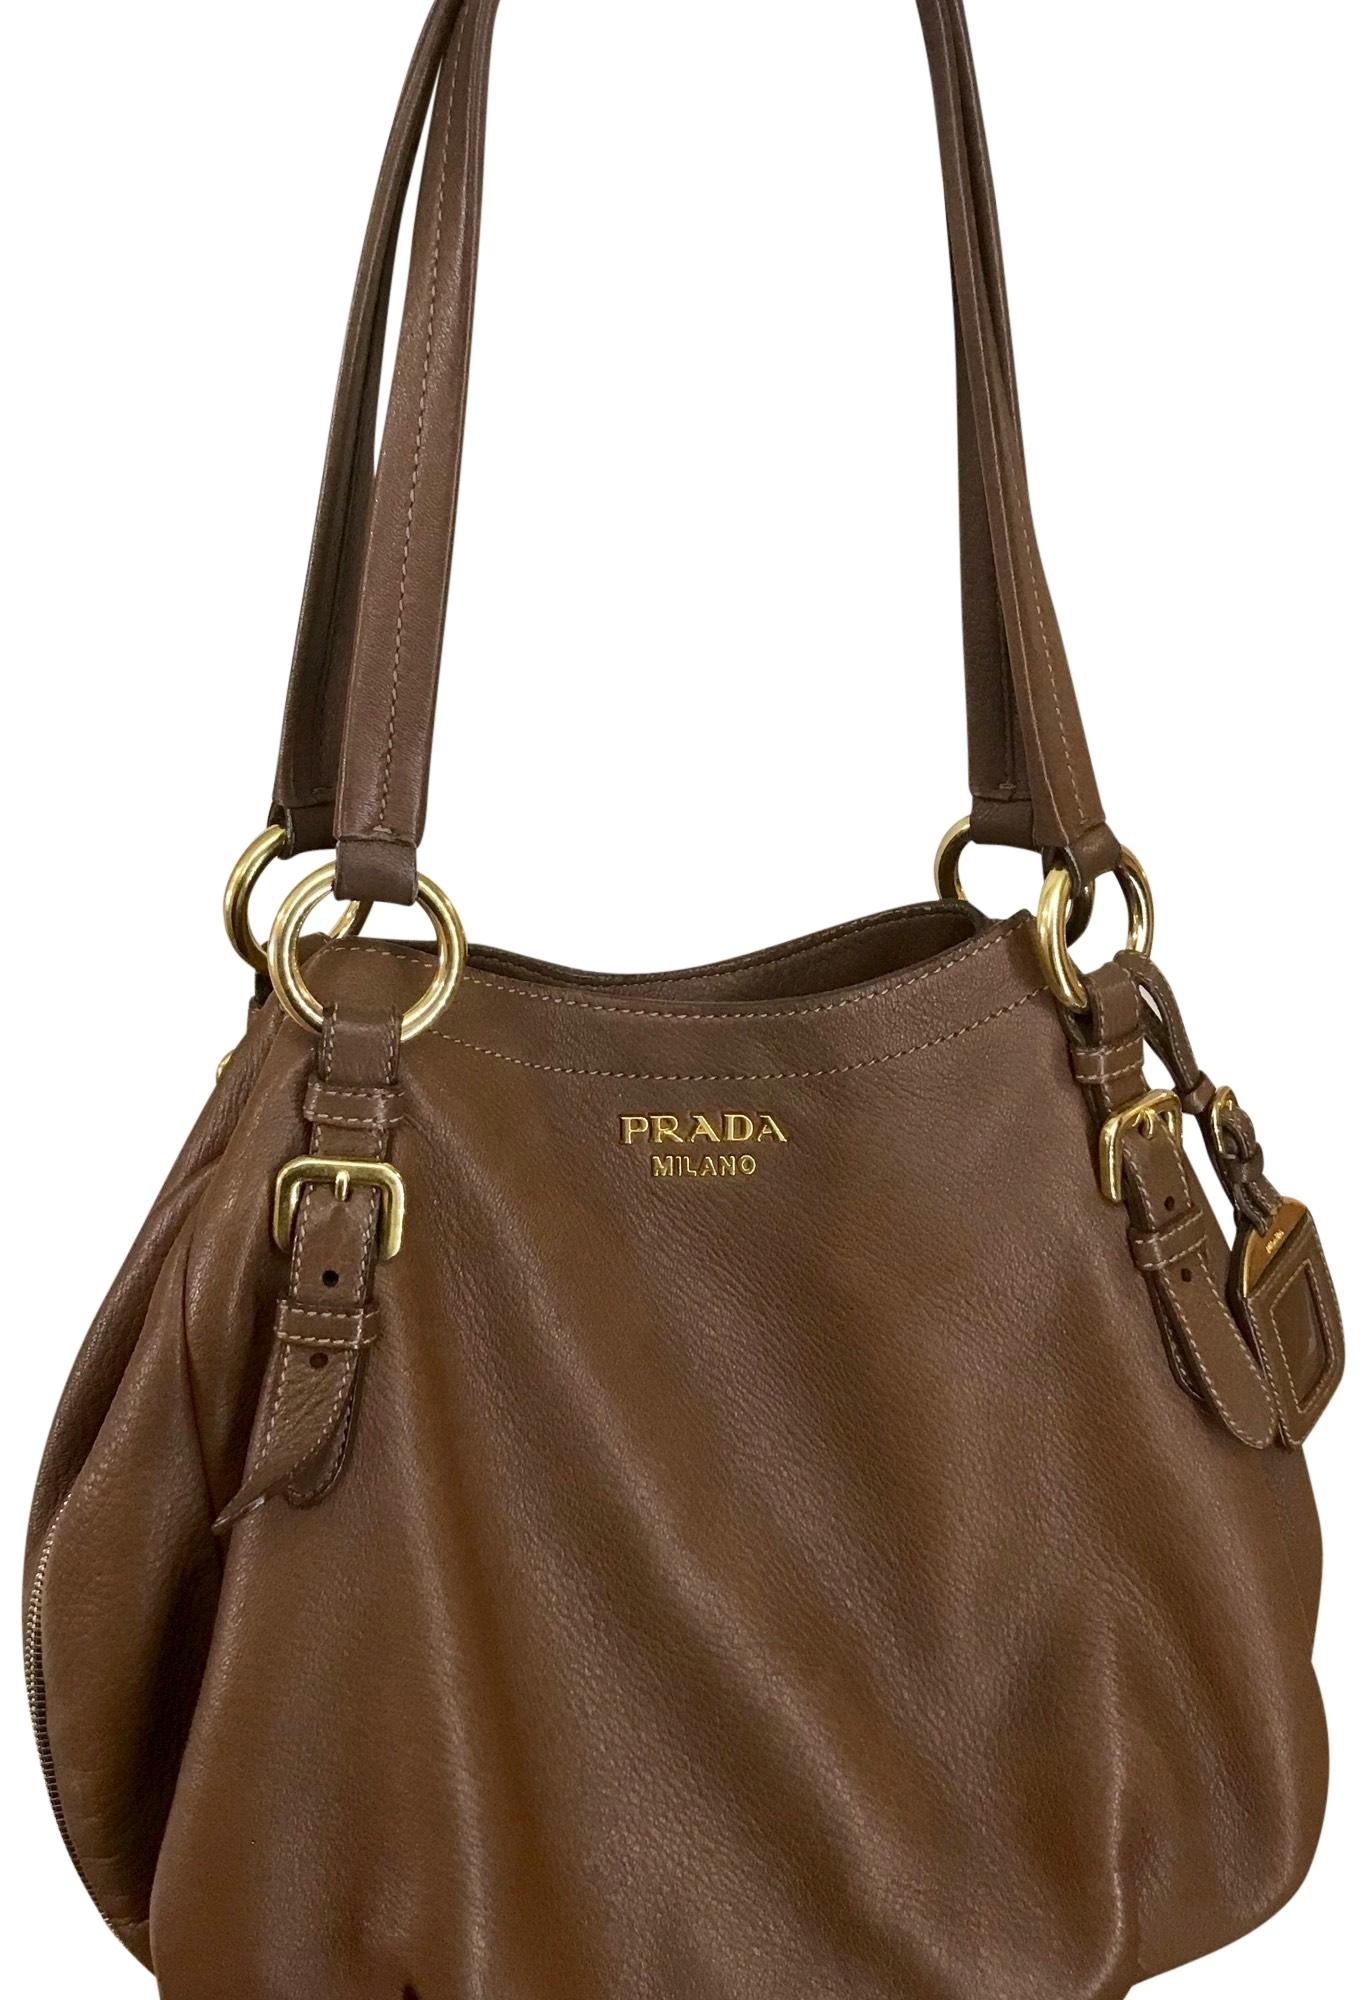 810e0faecf32 where to buy prada cervo deerskin top handle tote argilla 126711 214b7  6adf9; shopping prada tote in brown gold 0a585 92c03